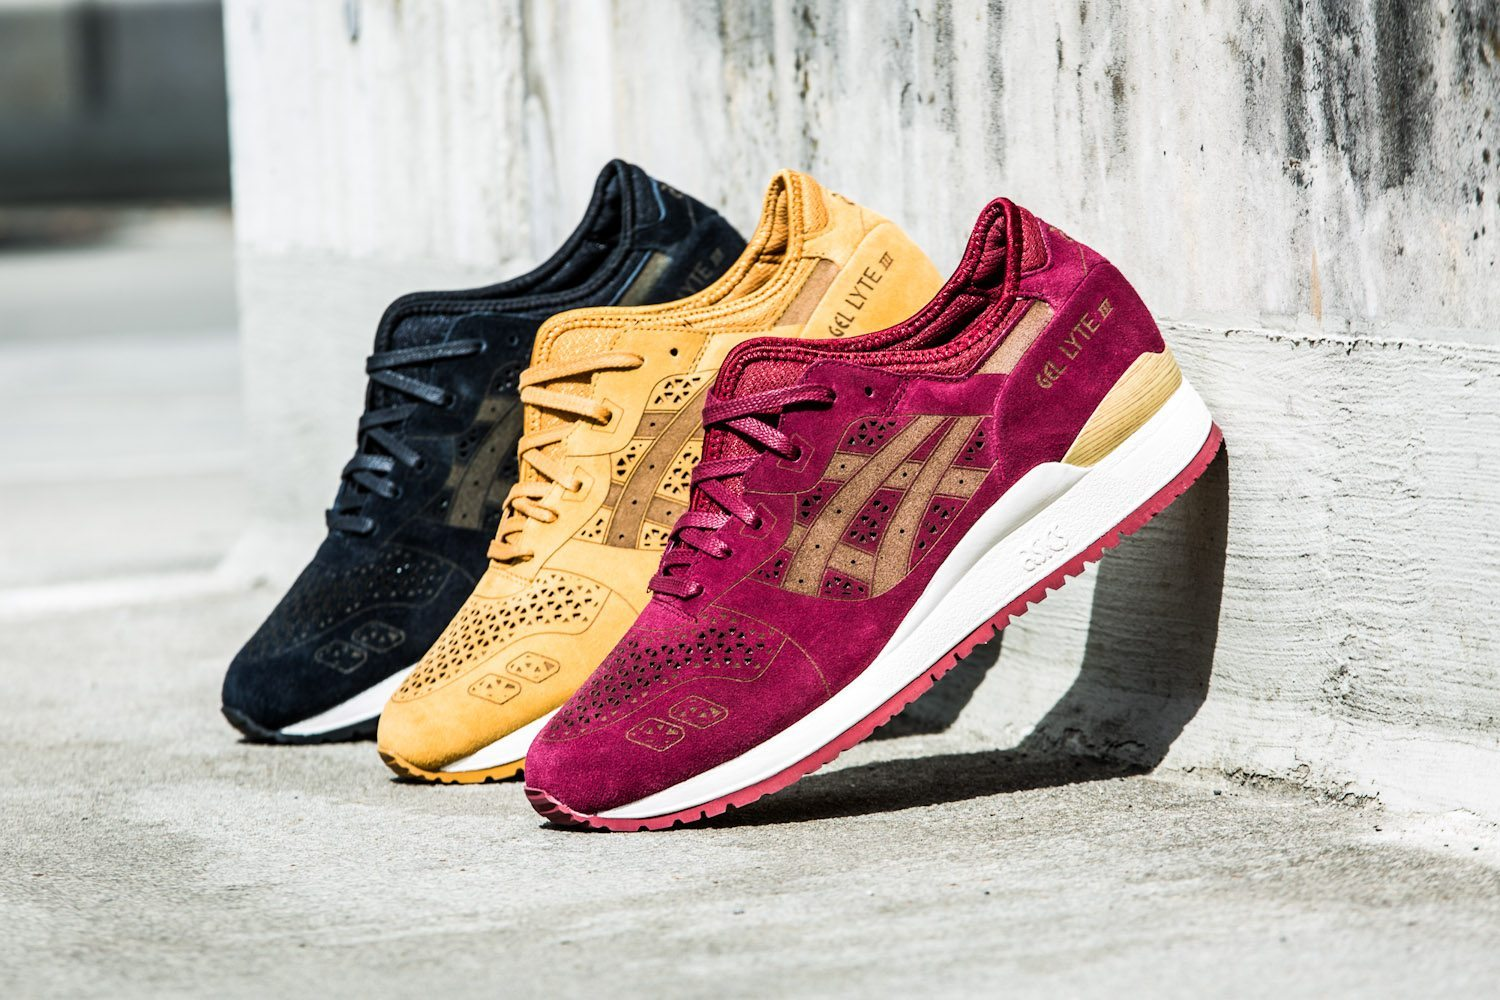 Asics Gel Lyte III Laser Cut Pack 2